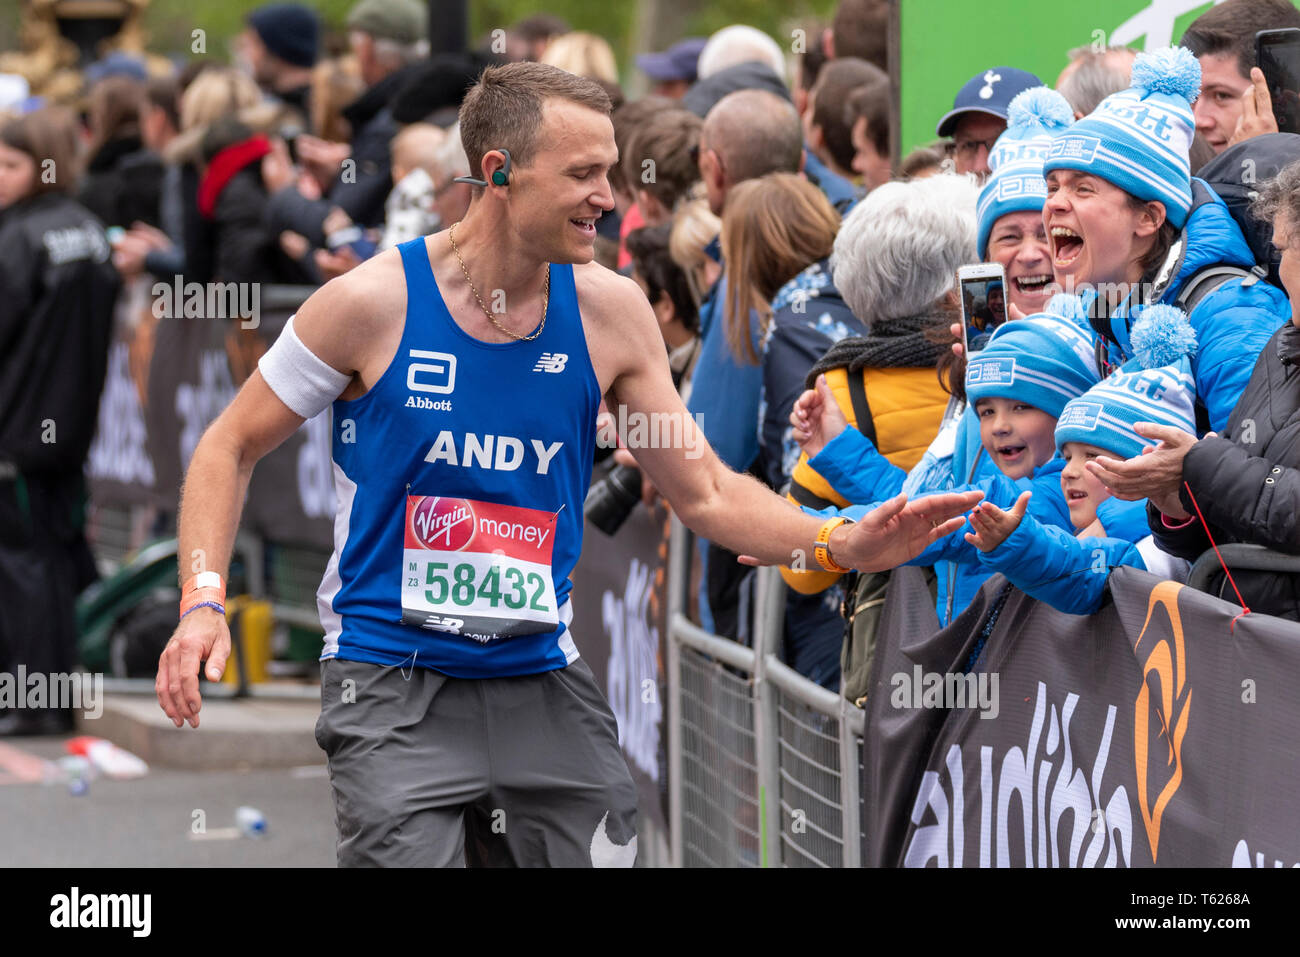 andrew-jefferies-with-supporting-family-at-london-marathon-2019-T6268A.jpg